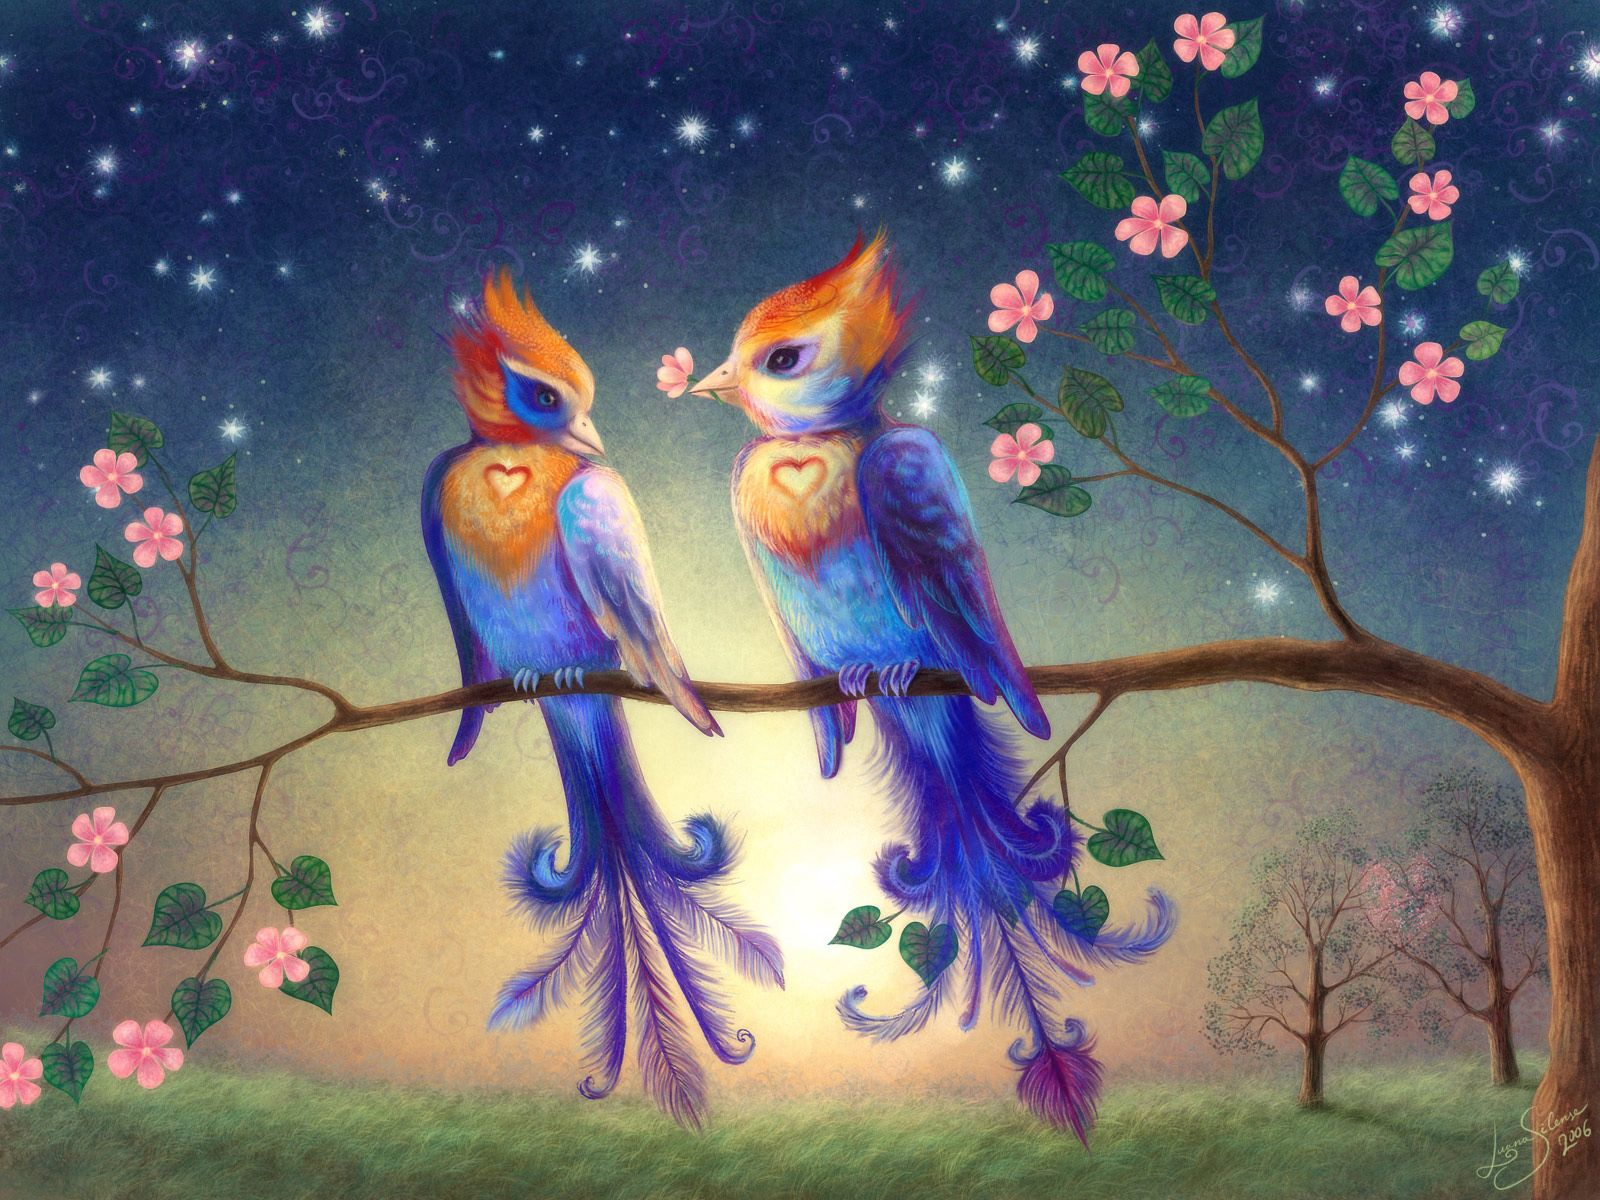 72499 download wallpaper Love, Branch, Couple, Pair, Picture, Drawing, Birds screensavers and pictures for free